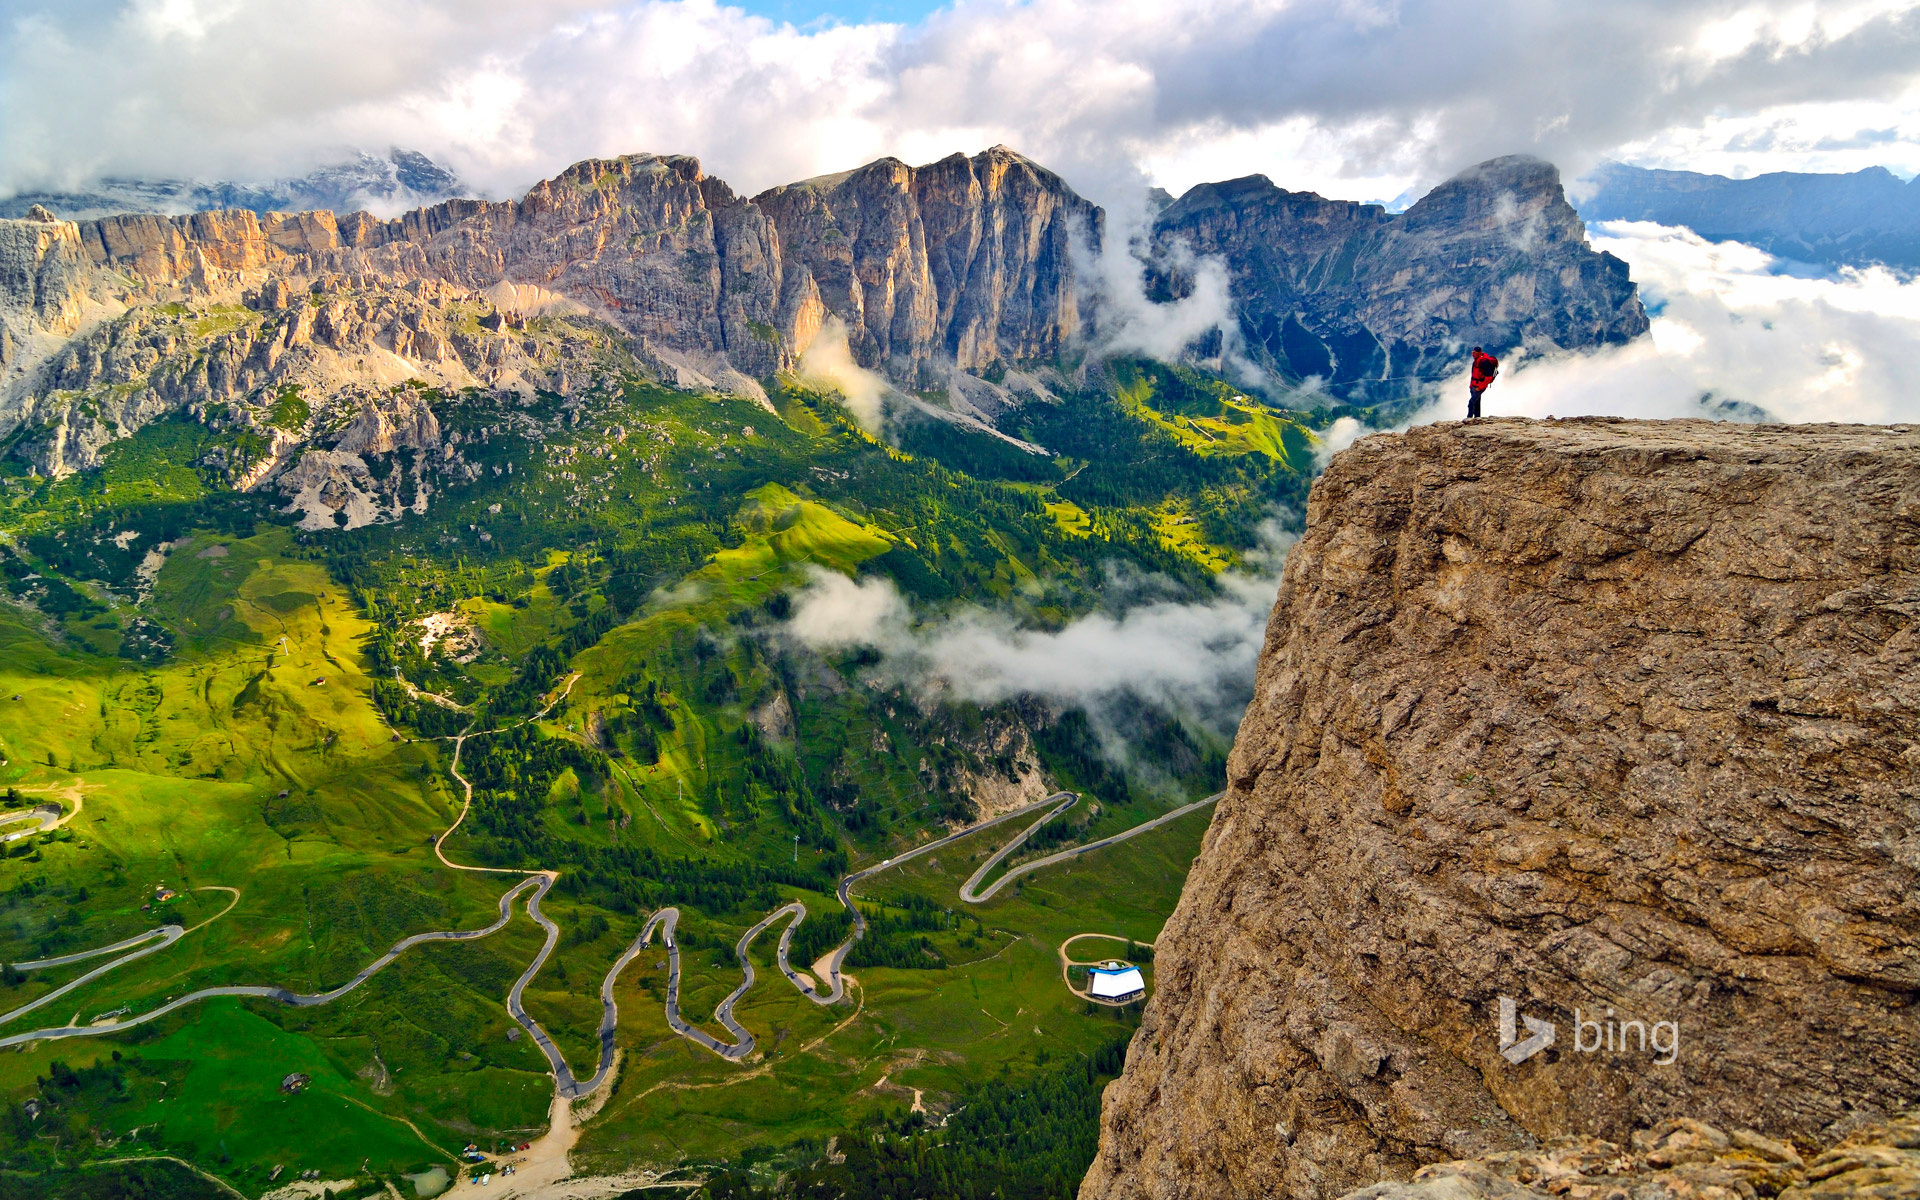 Trekker on the Sella Group mountain chain, Dolomites, South Tyrol, Italy